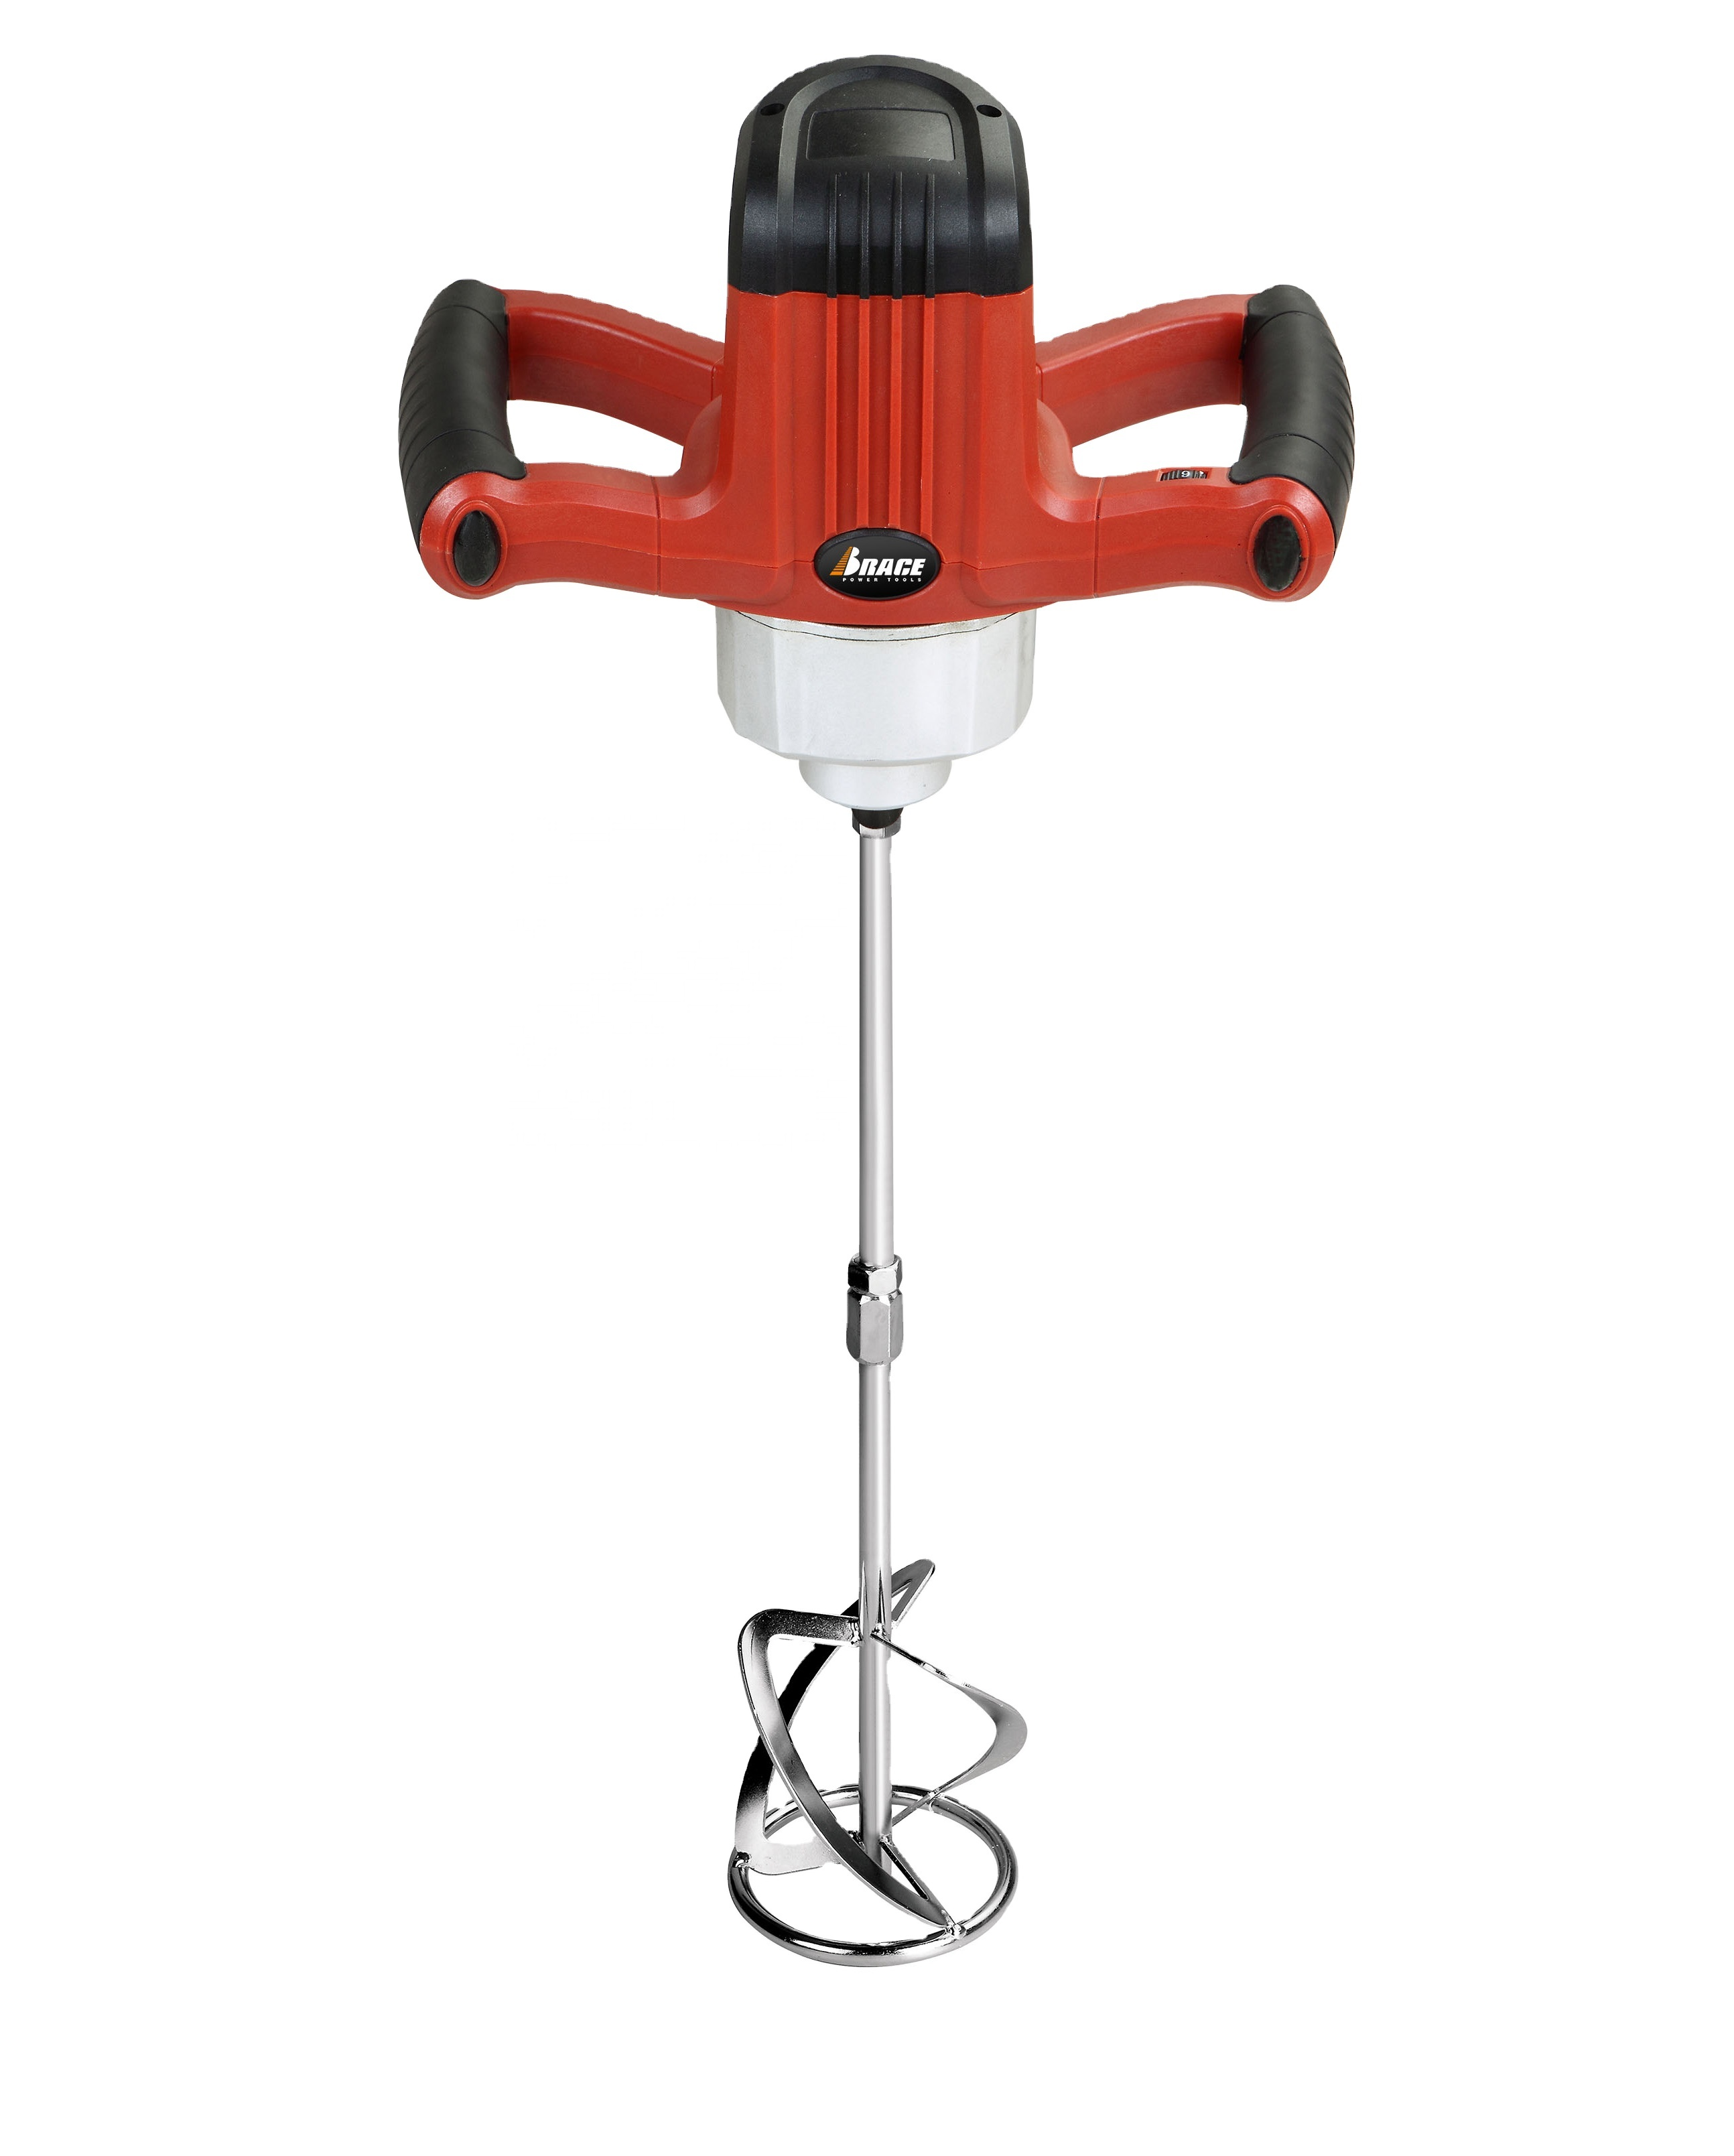 The 1200W 1400W Handheld Electric Paint Paddle Mixer With Two Variable Speed